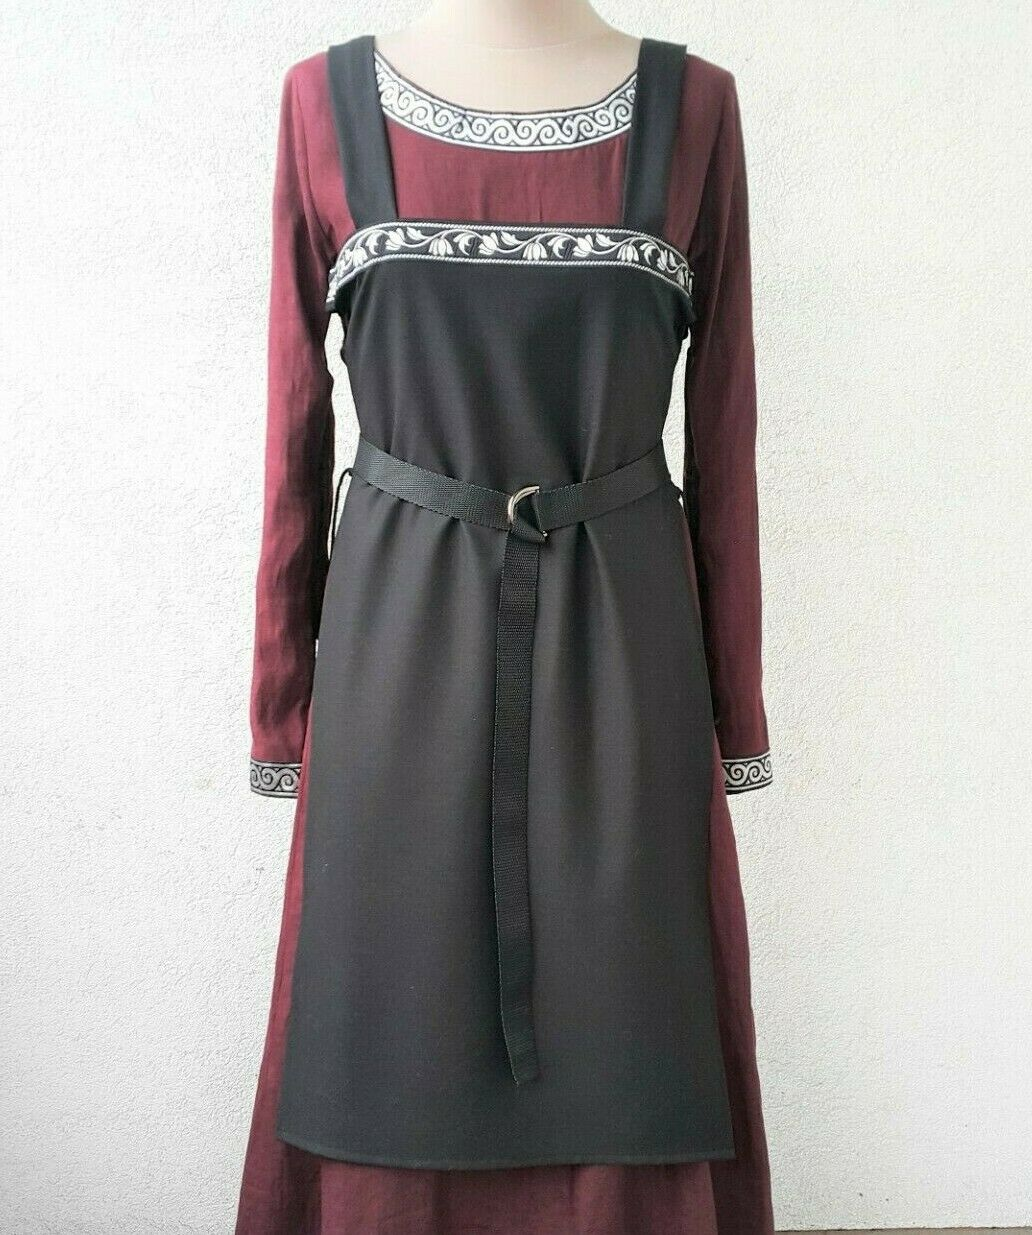 Viking apron the black for women Historical medieval outfit.